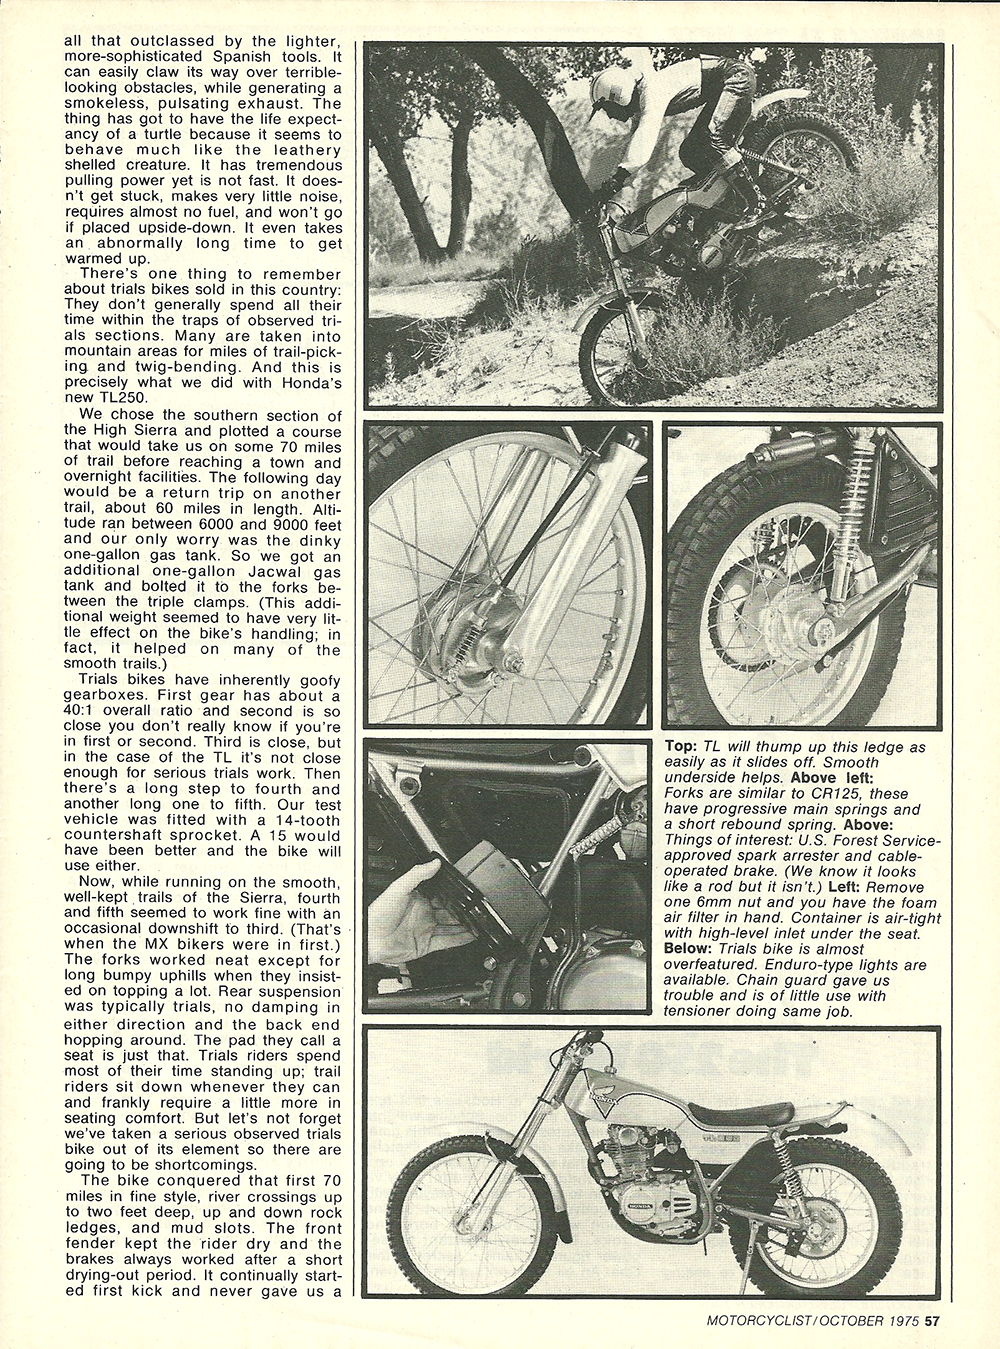 1975 Honda TL250 road test 2.jpg